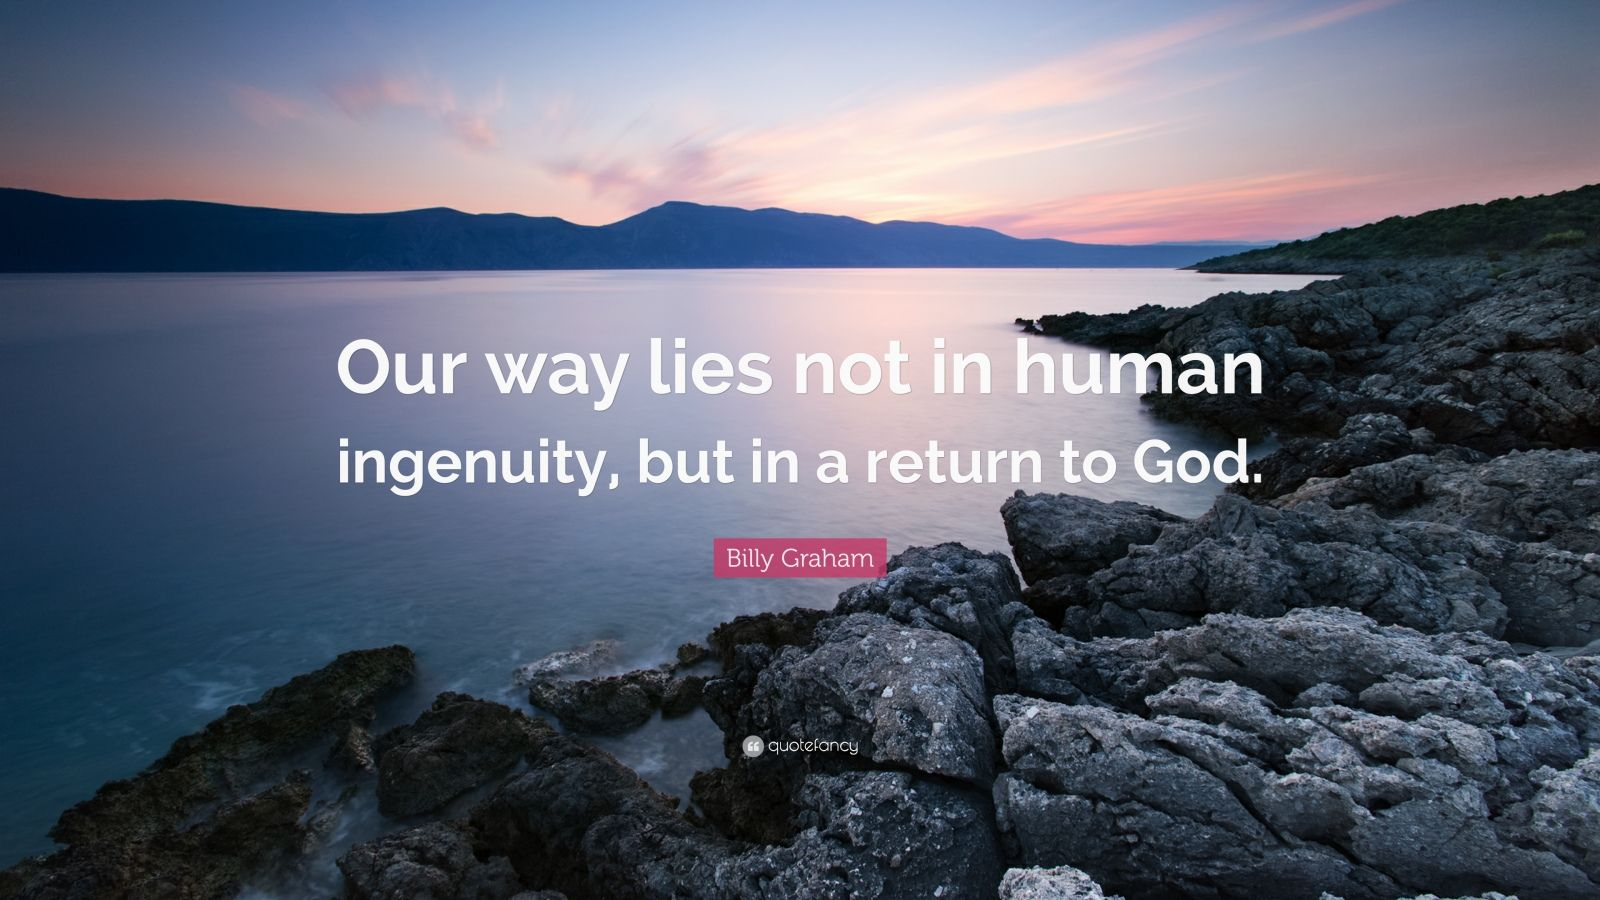 """Billy Graham Quote: """"Our way lies not in human ingenuity, but in a return to God."""""""